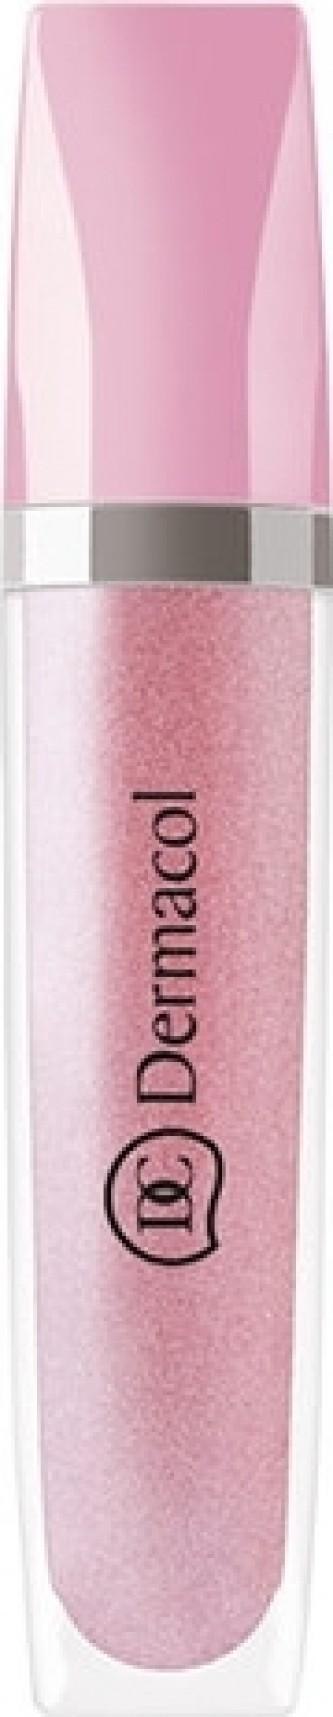 Dermacol Shimmering Lip Gloss 8 ml 5